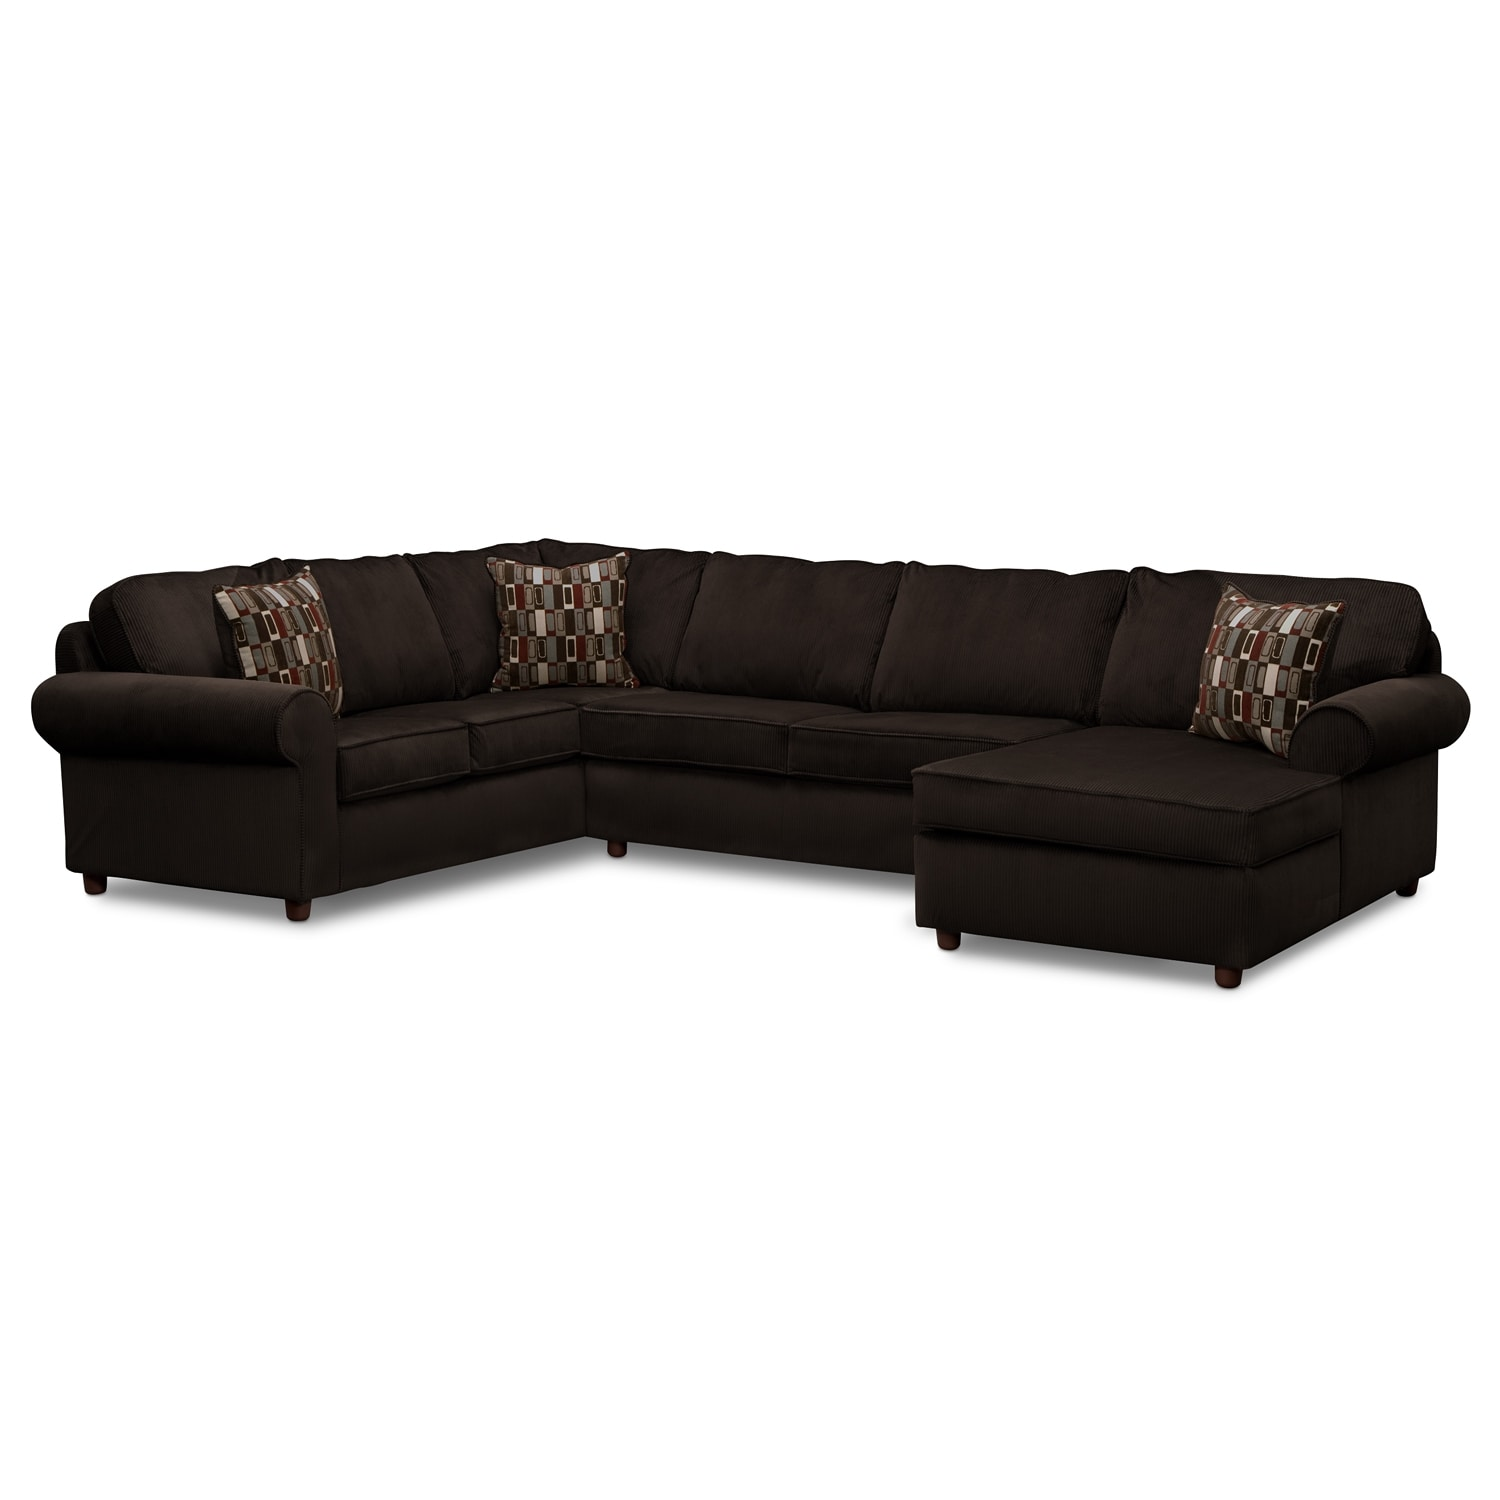 [Monarch 3-Piece Sectional]